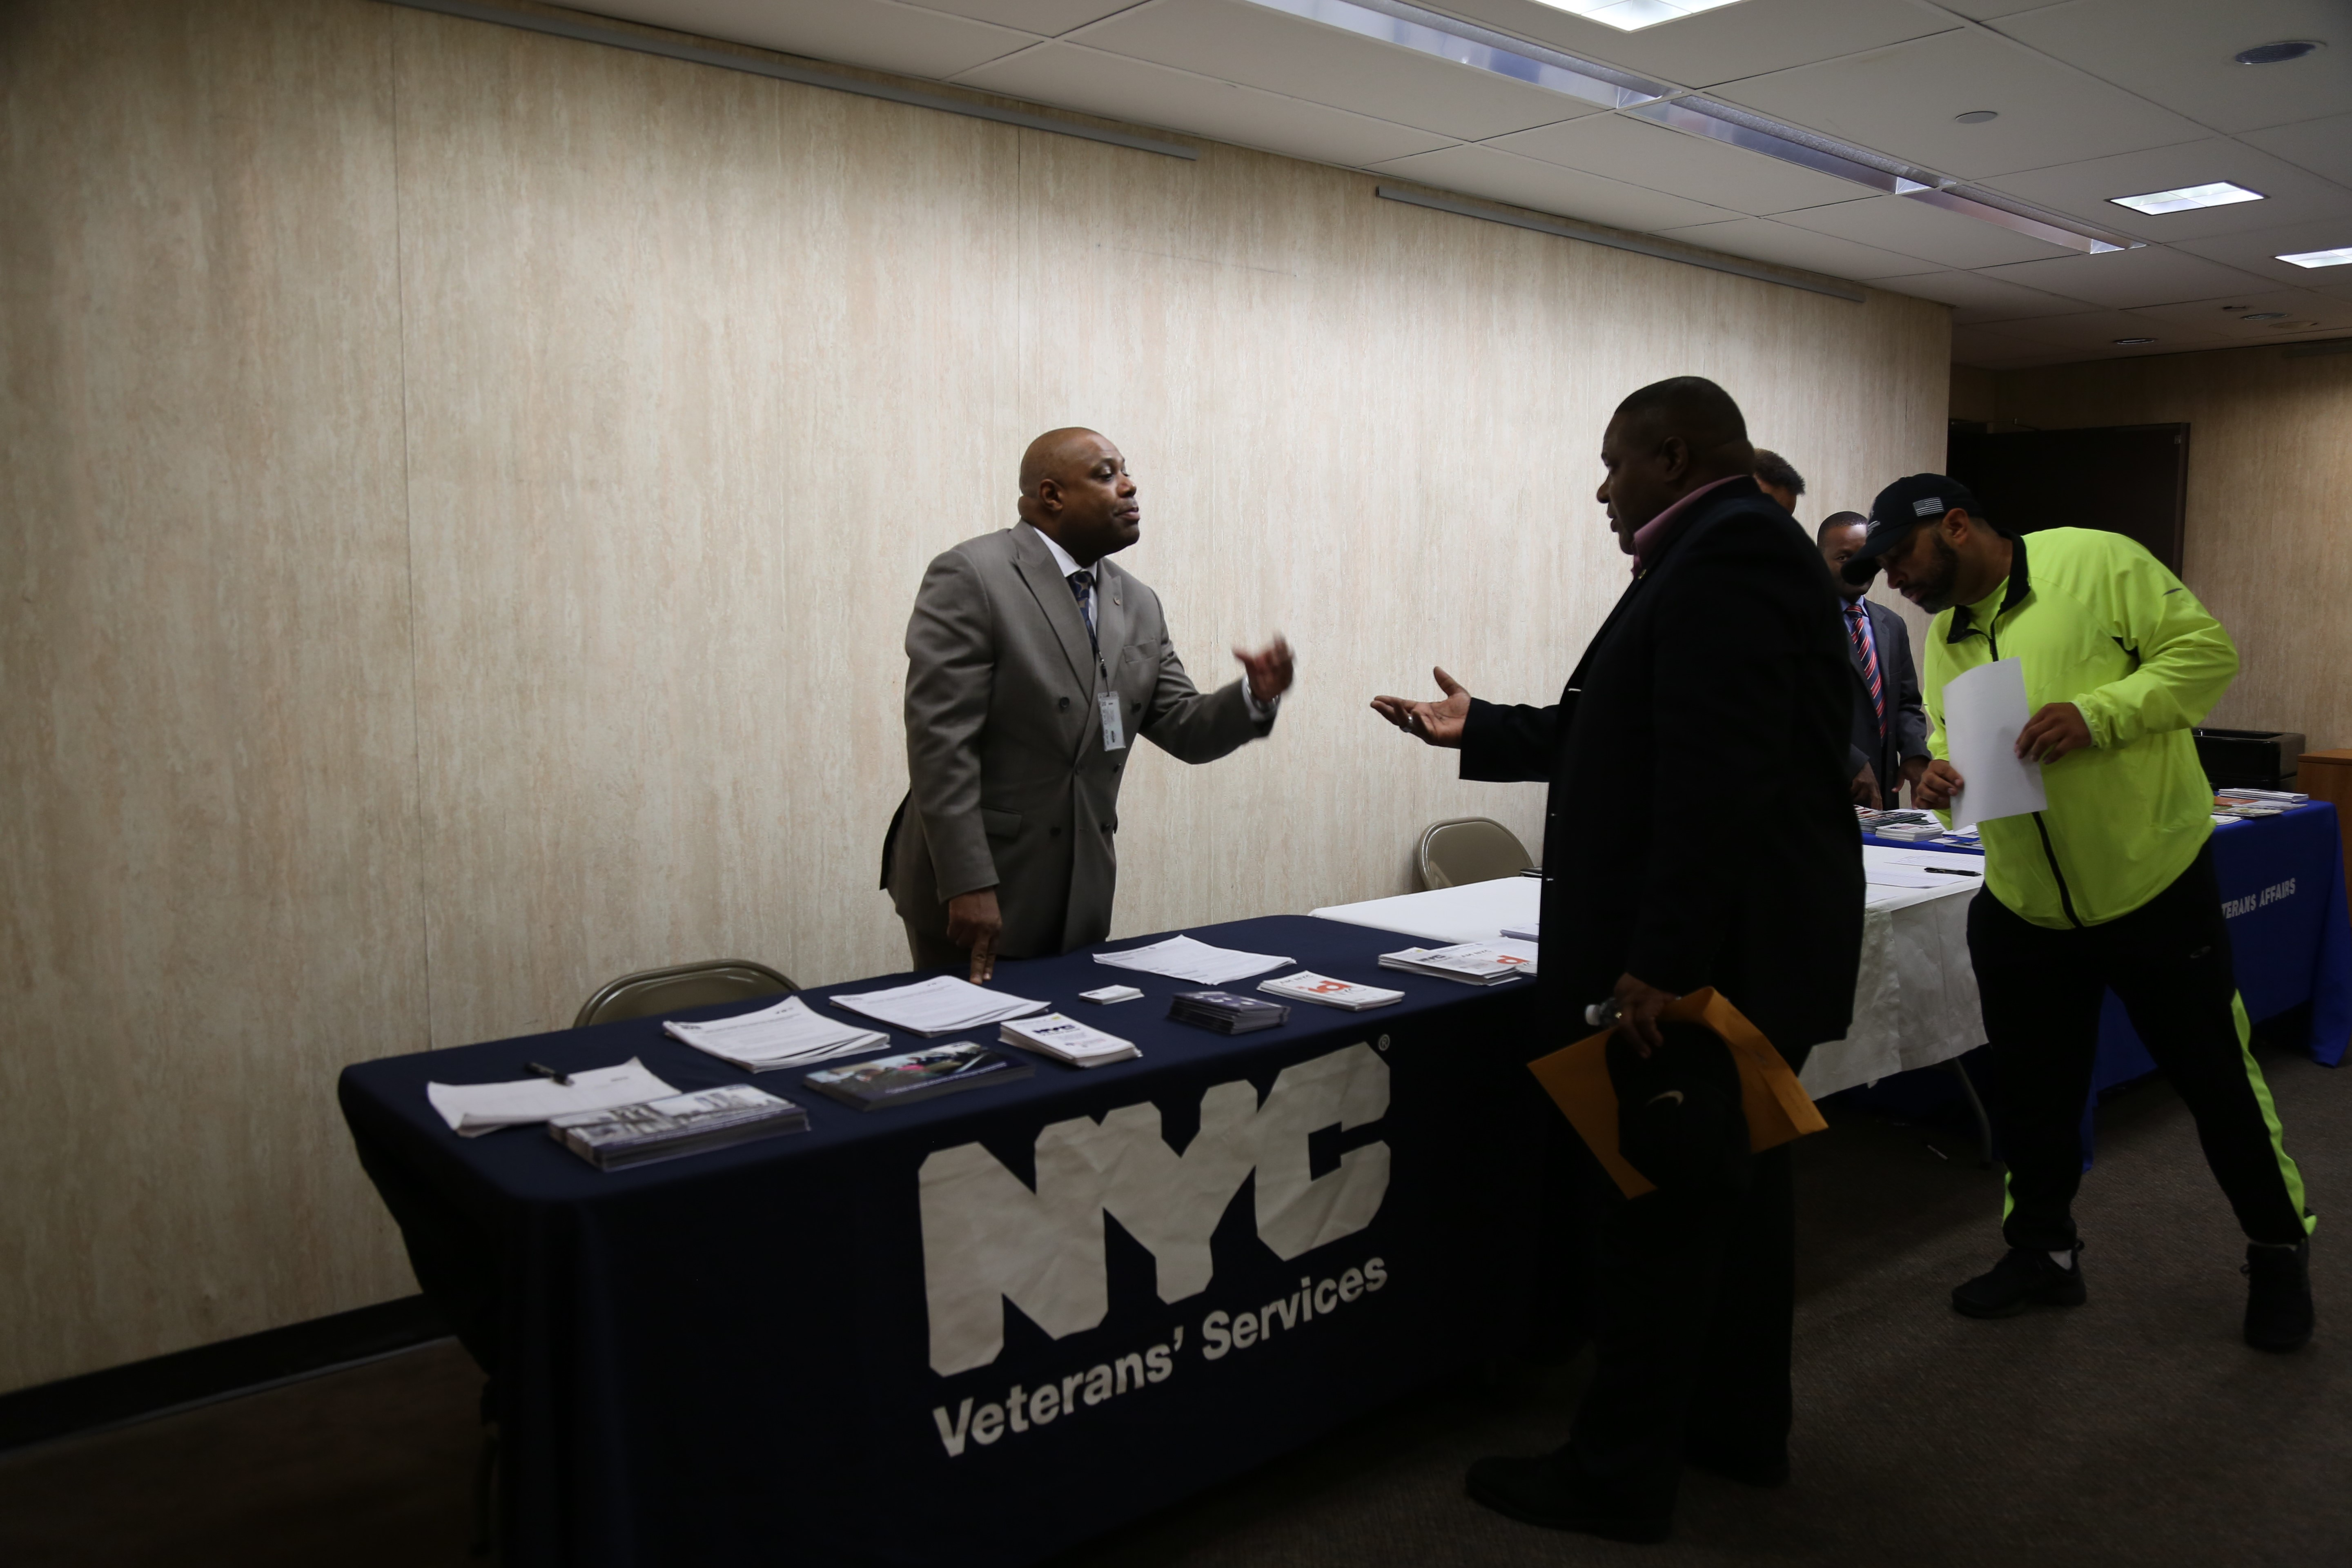 DVS outreach specialist stands behind resource table while engaging a constituent during community outreach event.